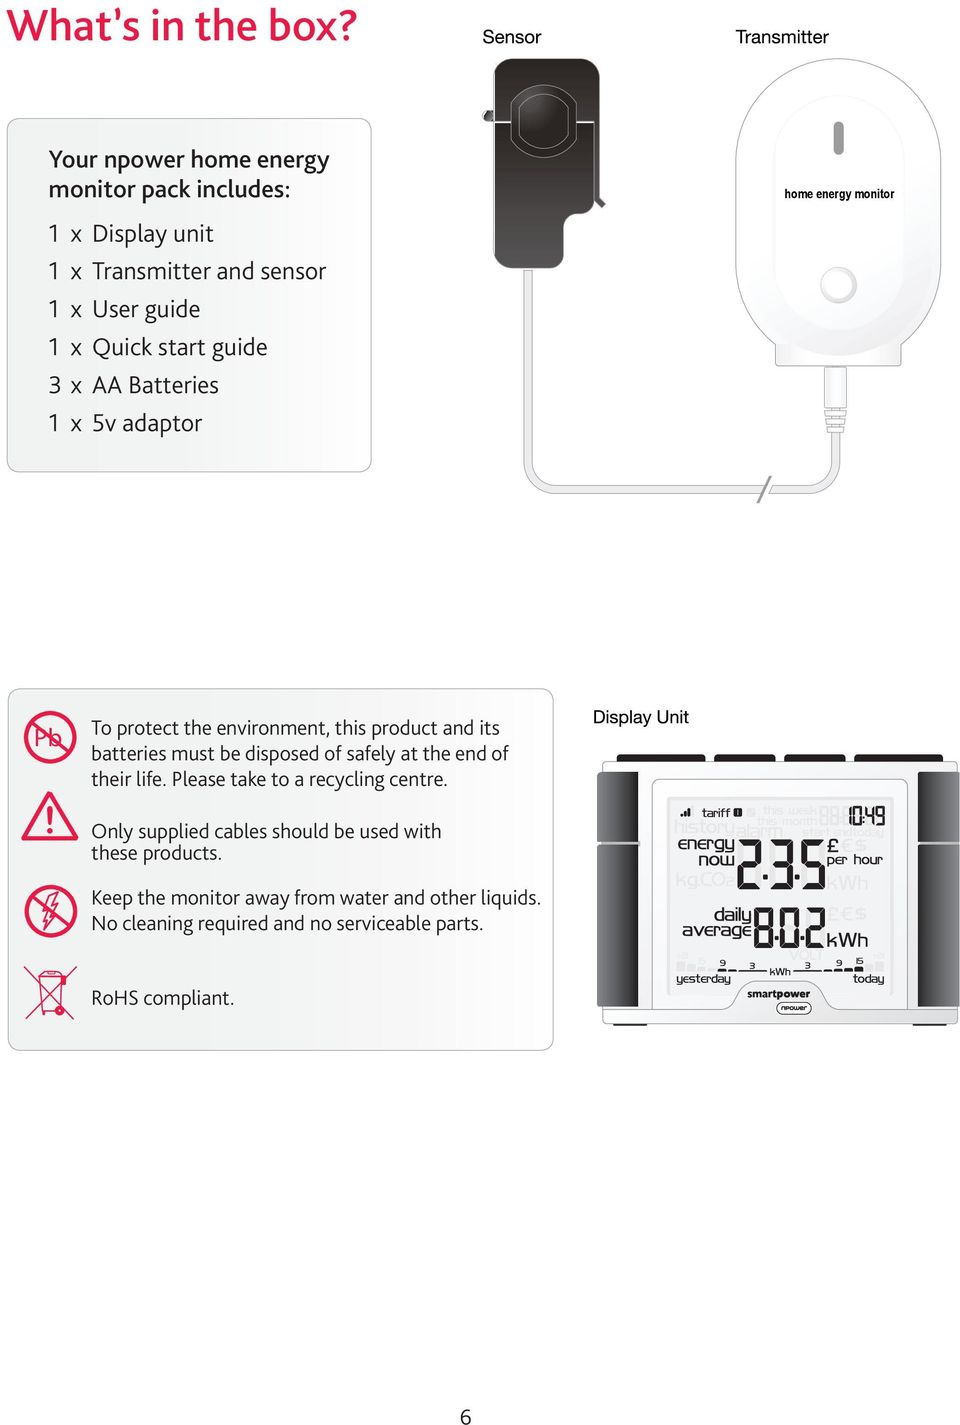 Your Npower Home Energy Monitor Pdf Wireless Sensor Battery Replacement Instructions For Safewatch Batteries 1 X 5v Adaptor 7 Installing